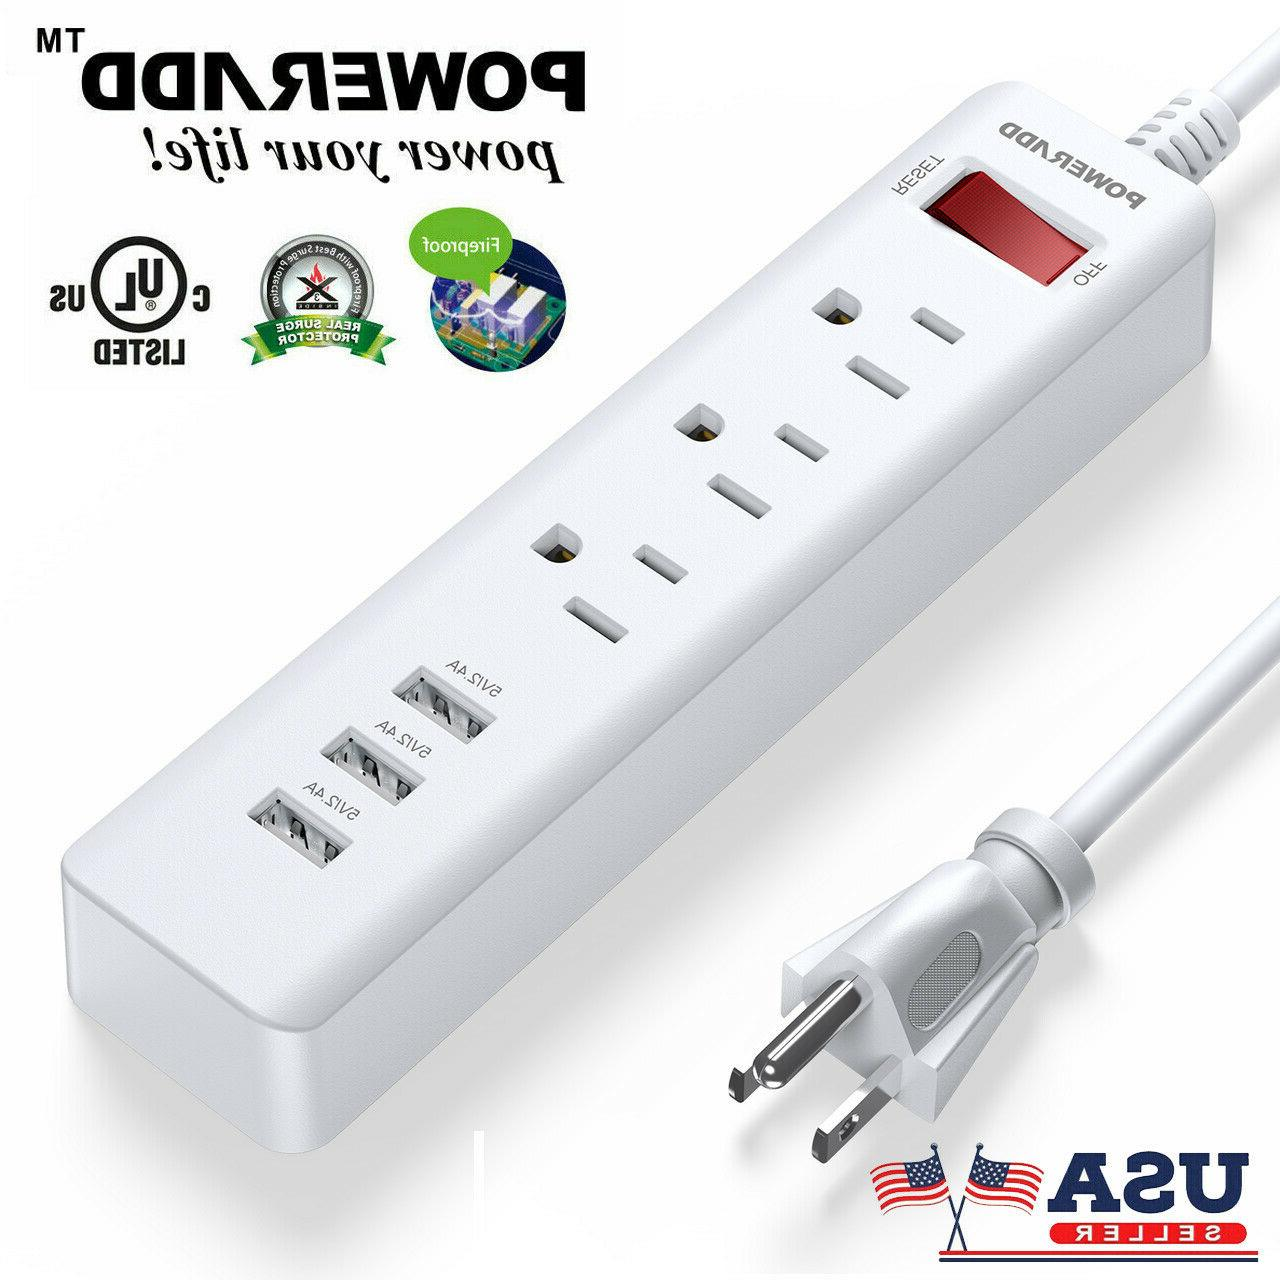 3 power strip surge protector